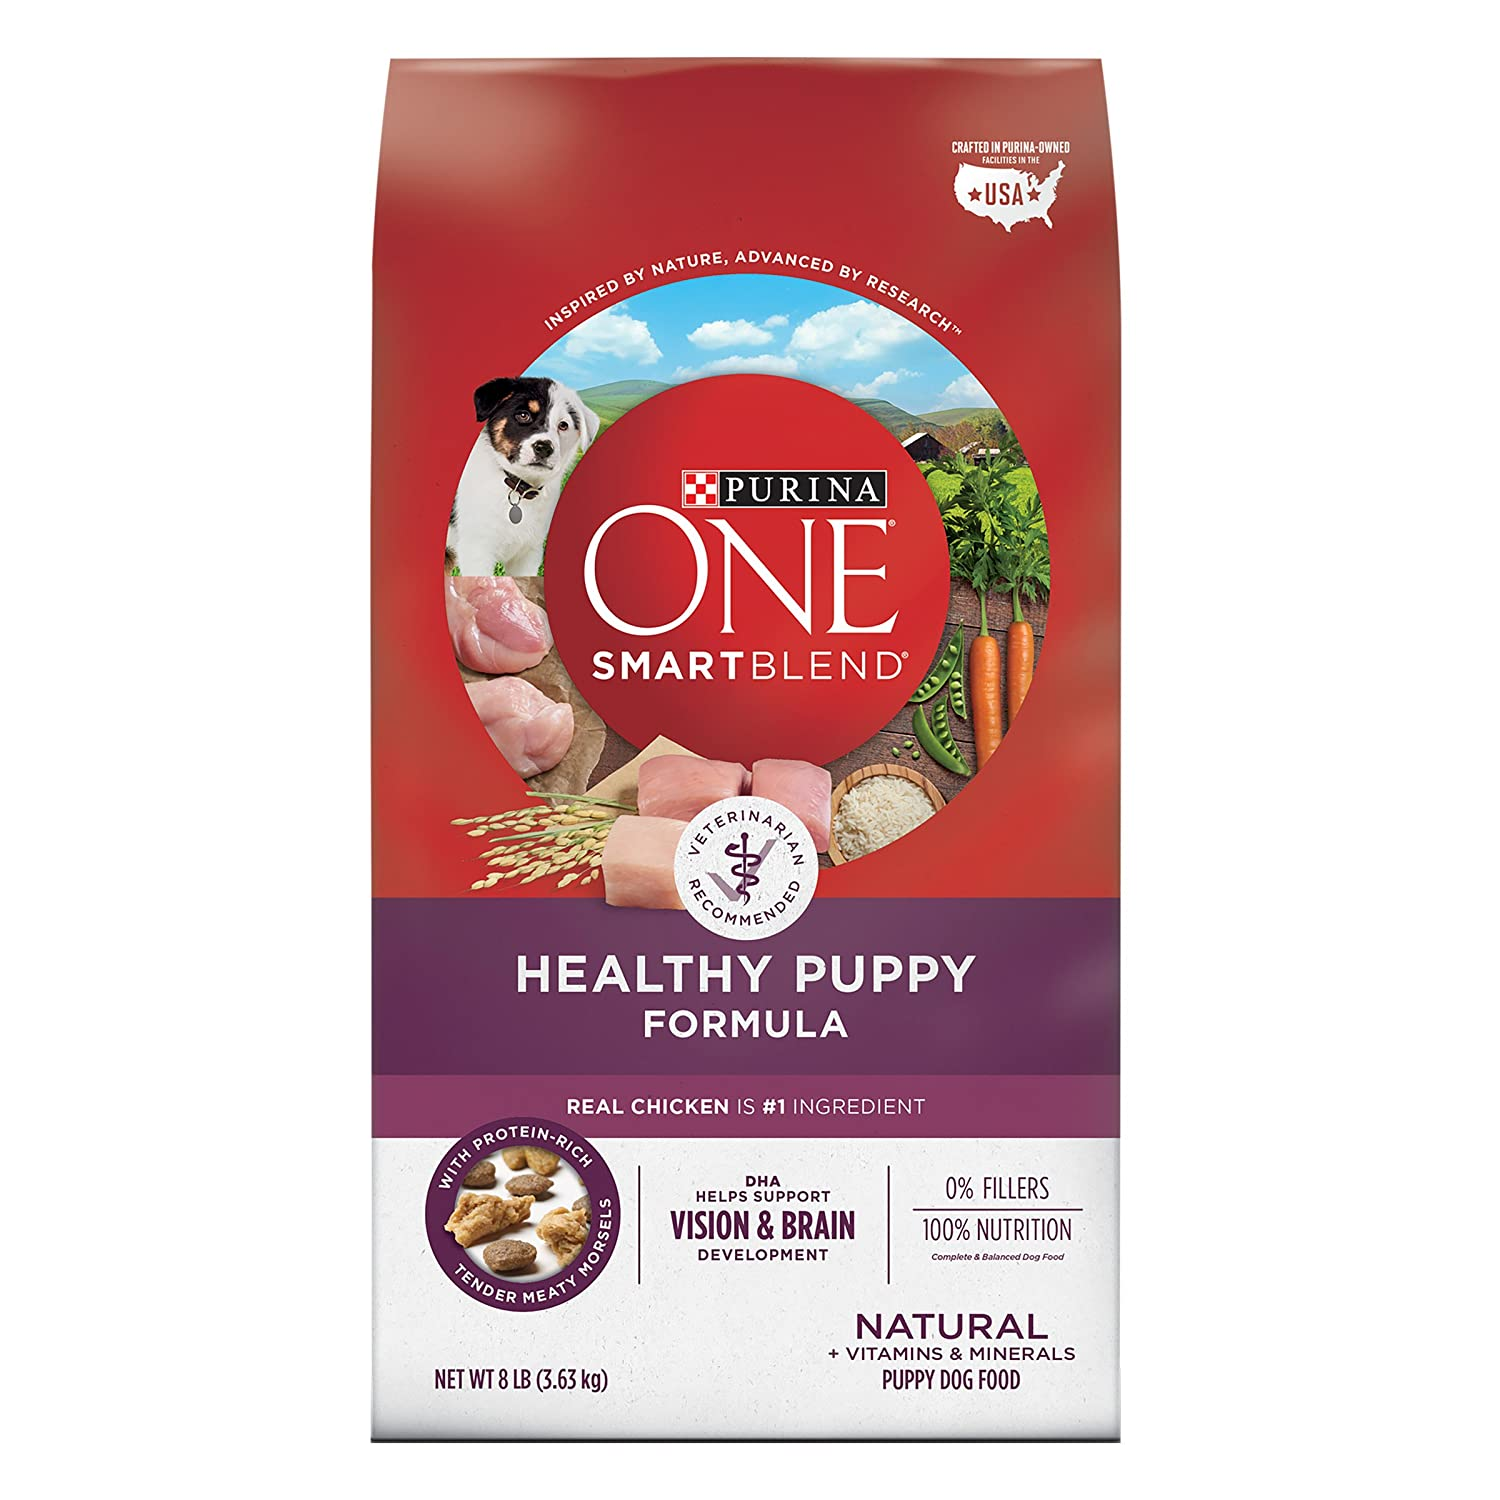 PURINA ONE SMARTBLEND NATURAL HEALTHY PUPPY FORMULA DRY DOG FOOD